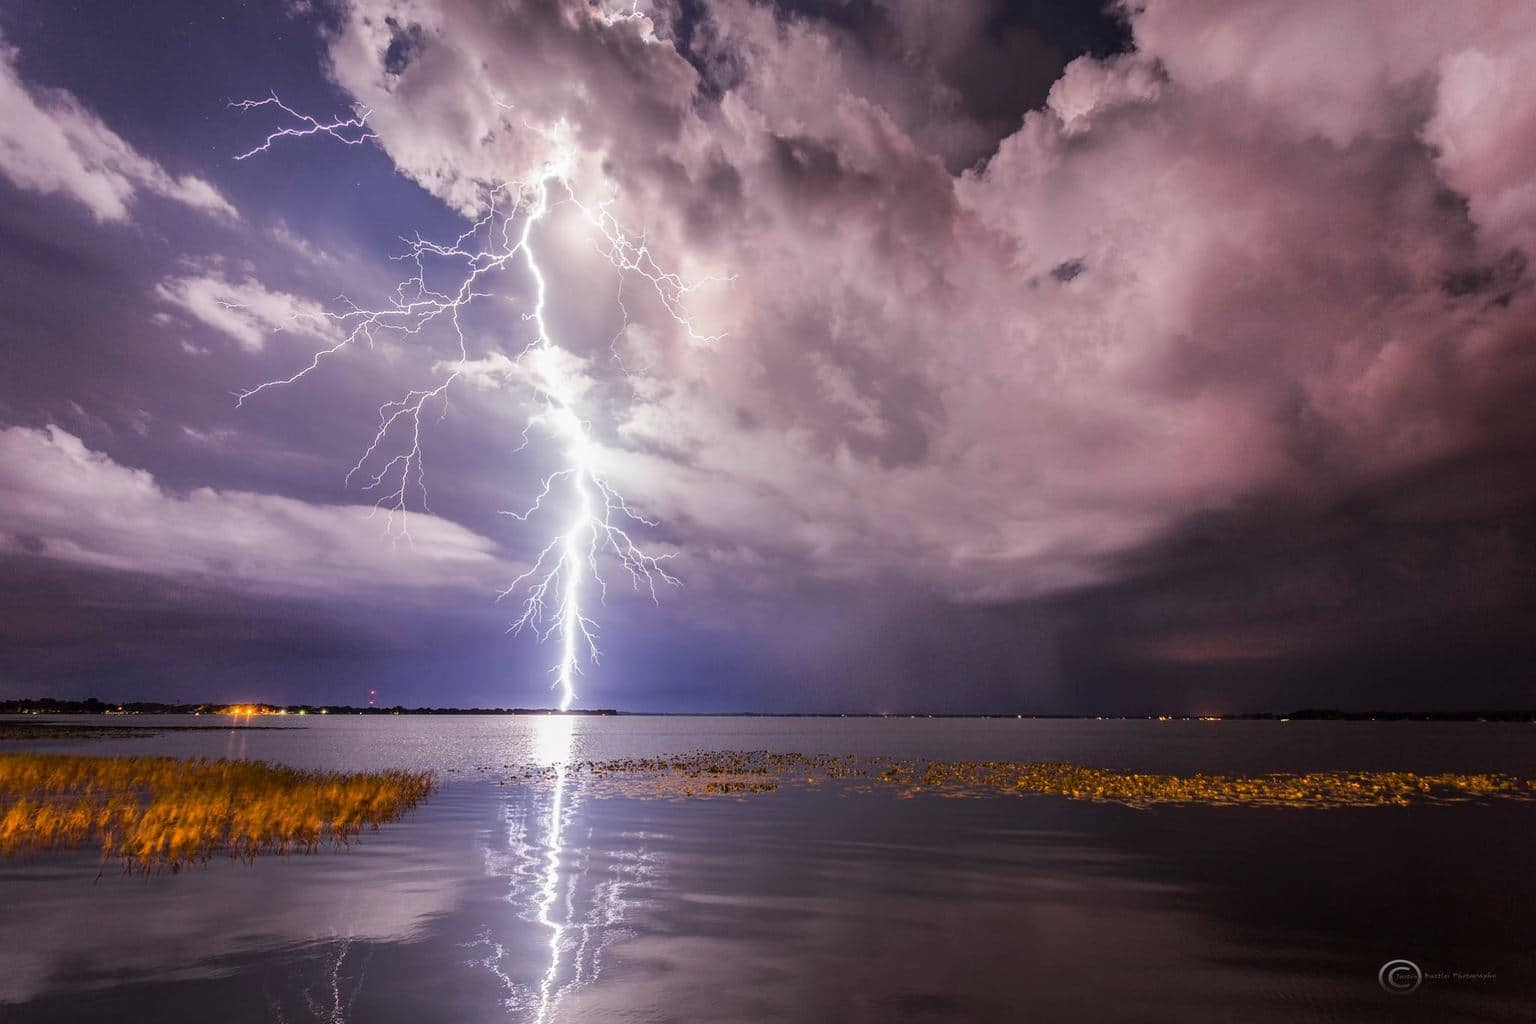 Spectacular light show at Lake Reedy in Frostproof, Florida last night